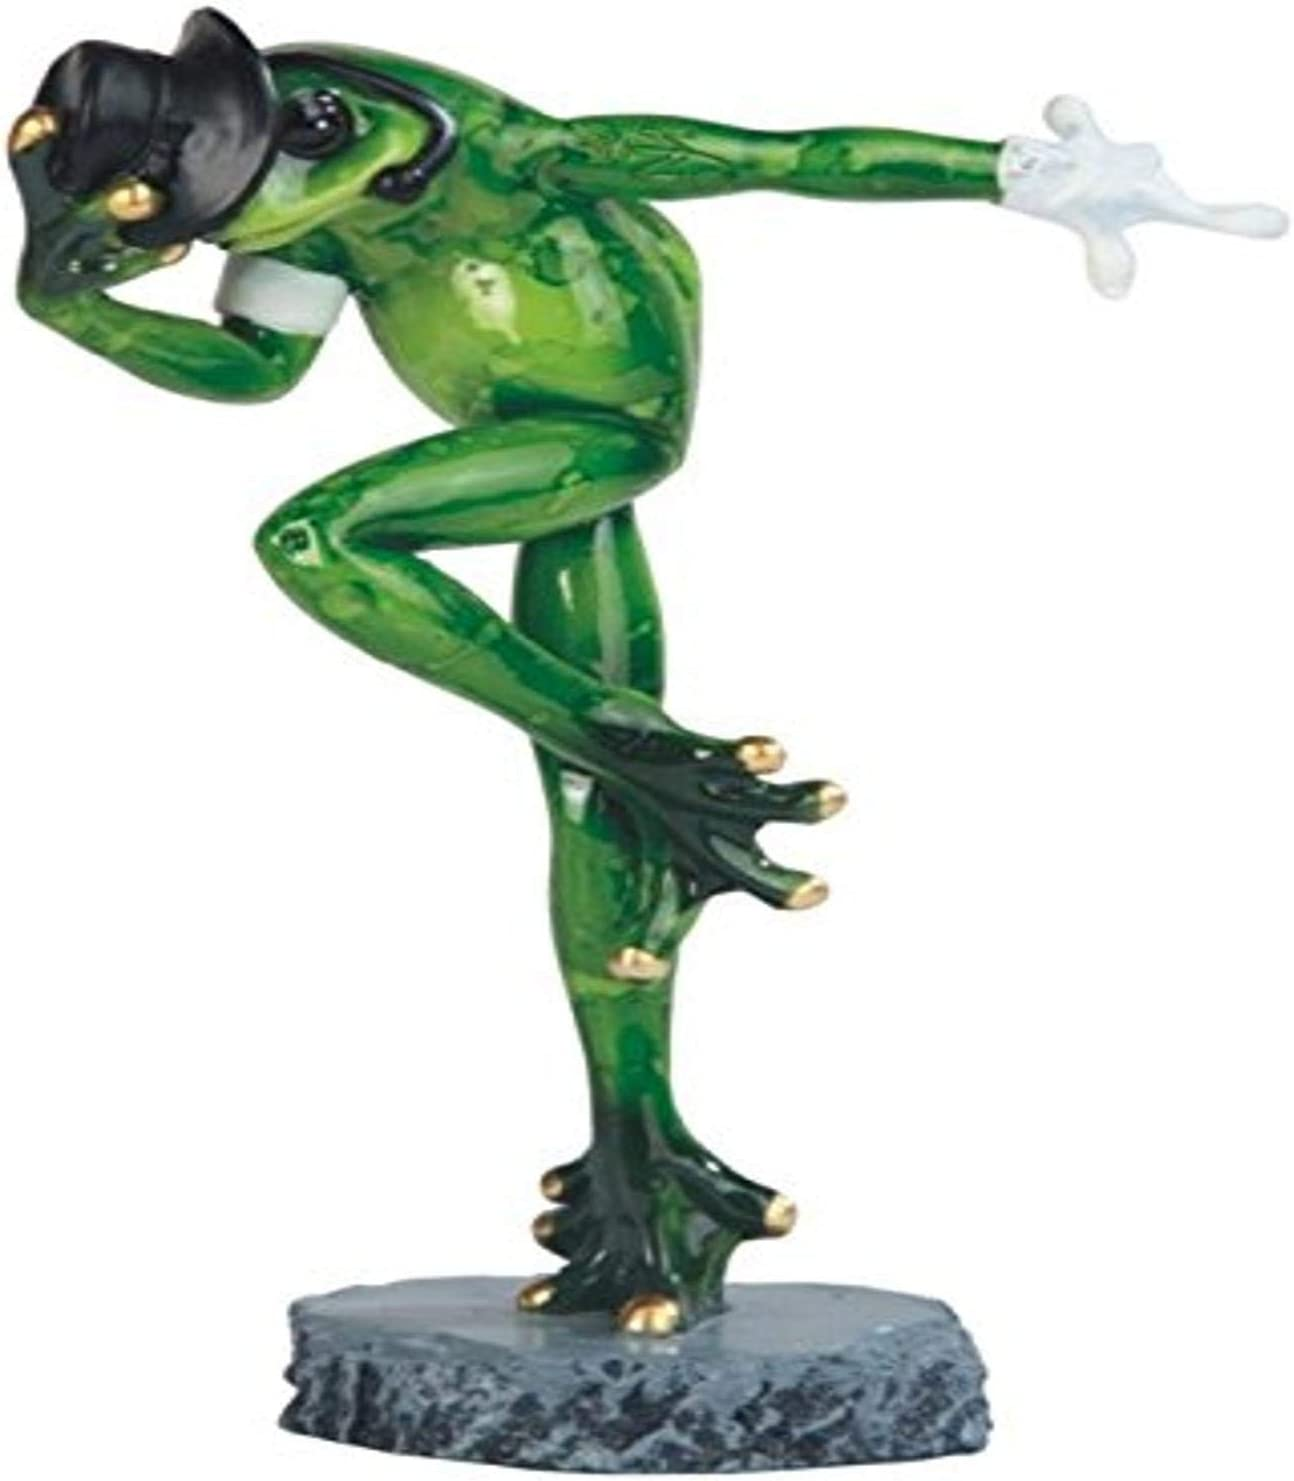 """StealStreet SS-G-61177 Michael Jackson Frog with Glove Statue, 7.5"""""""